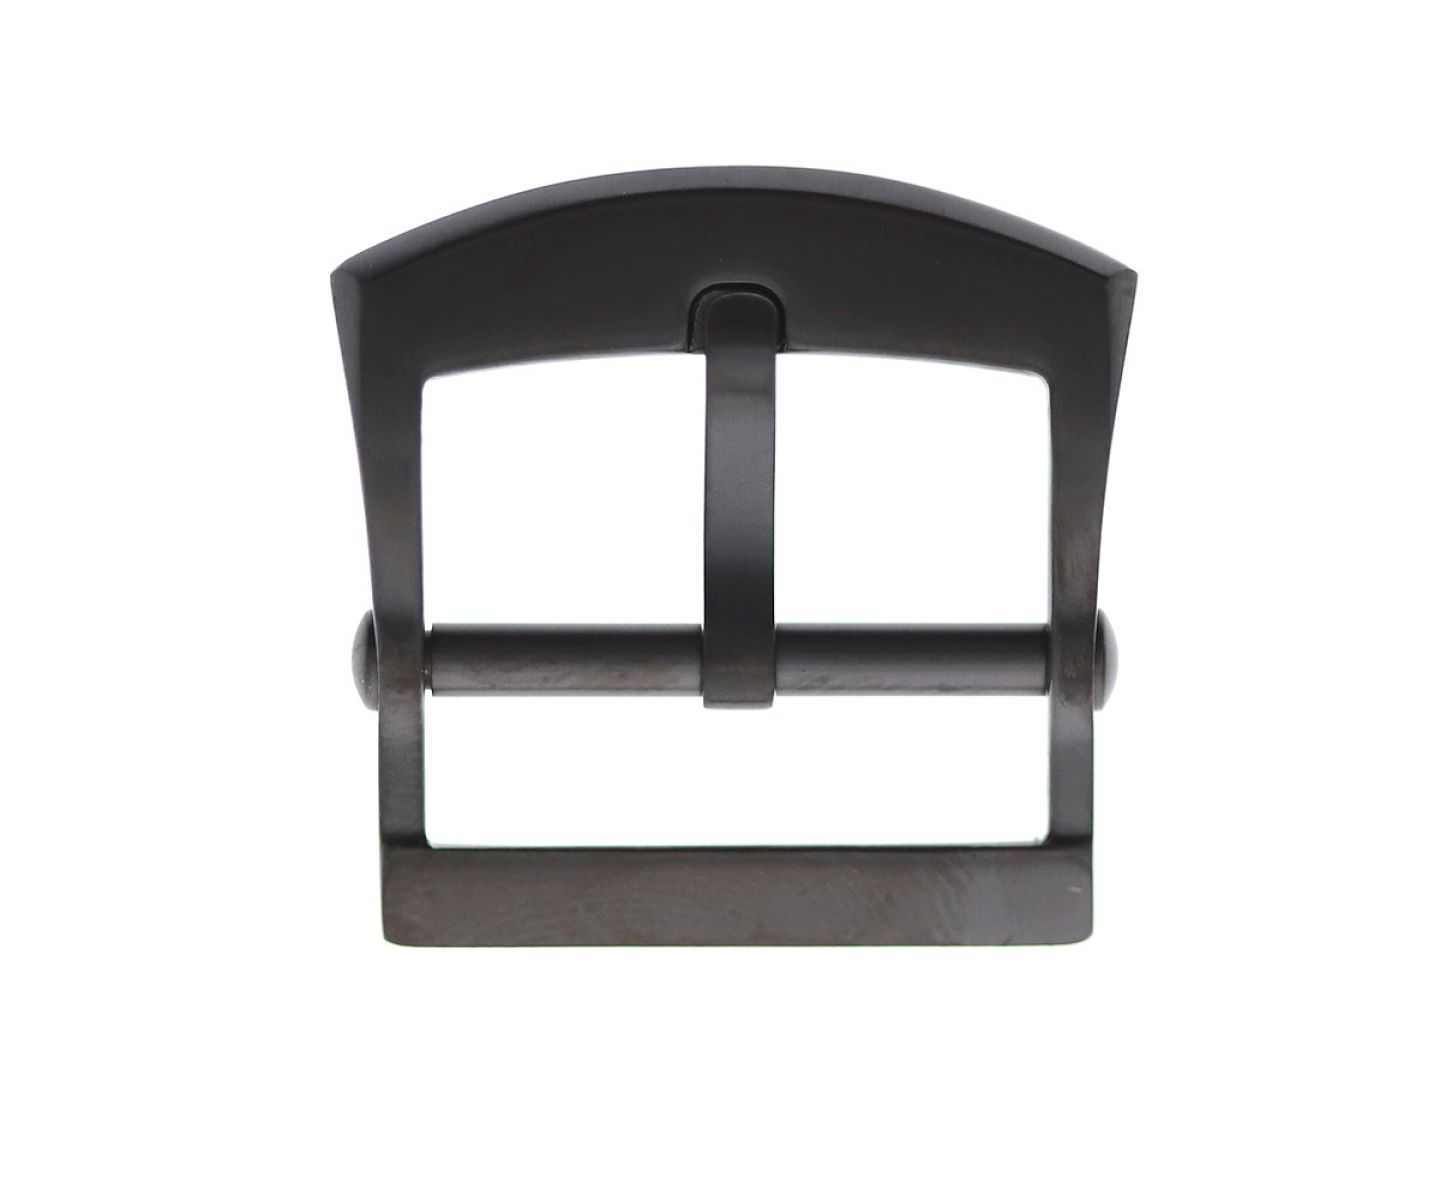 Stainless Steel High Grade Buckle 20mm. Black Matte